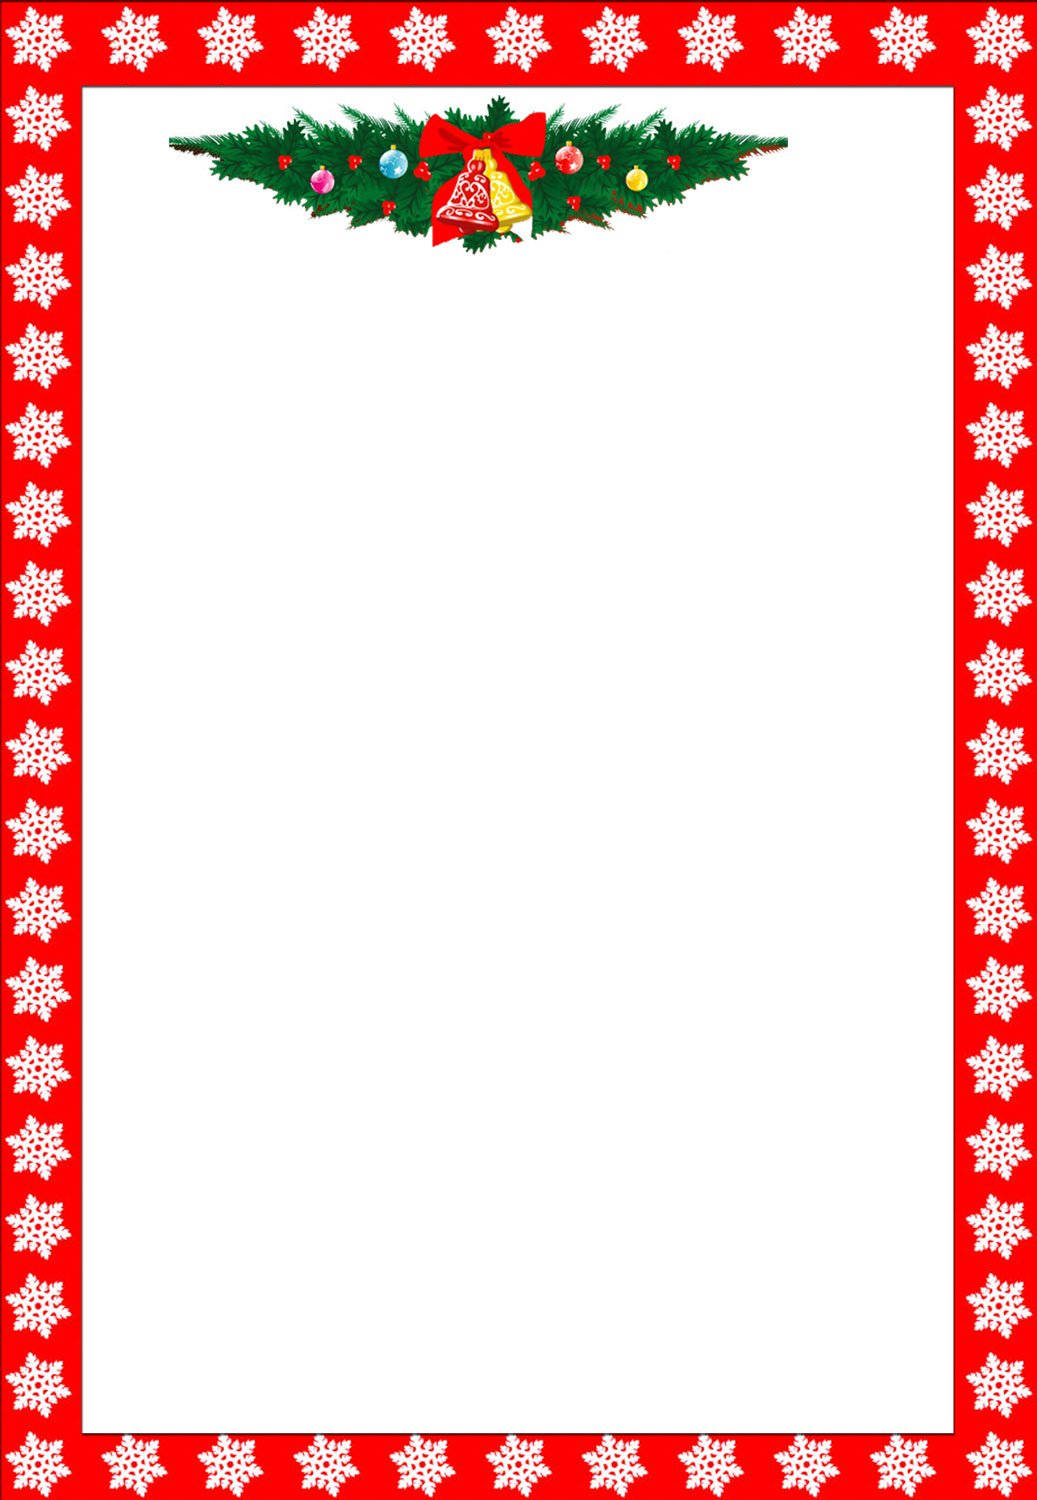 Free Christmas Clipart Borders Frames Home Travels Worlds Image